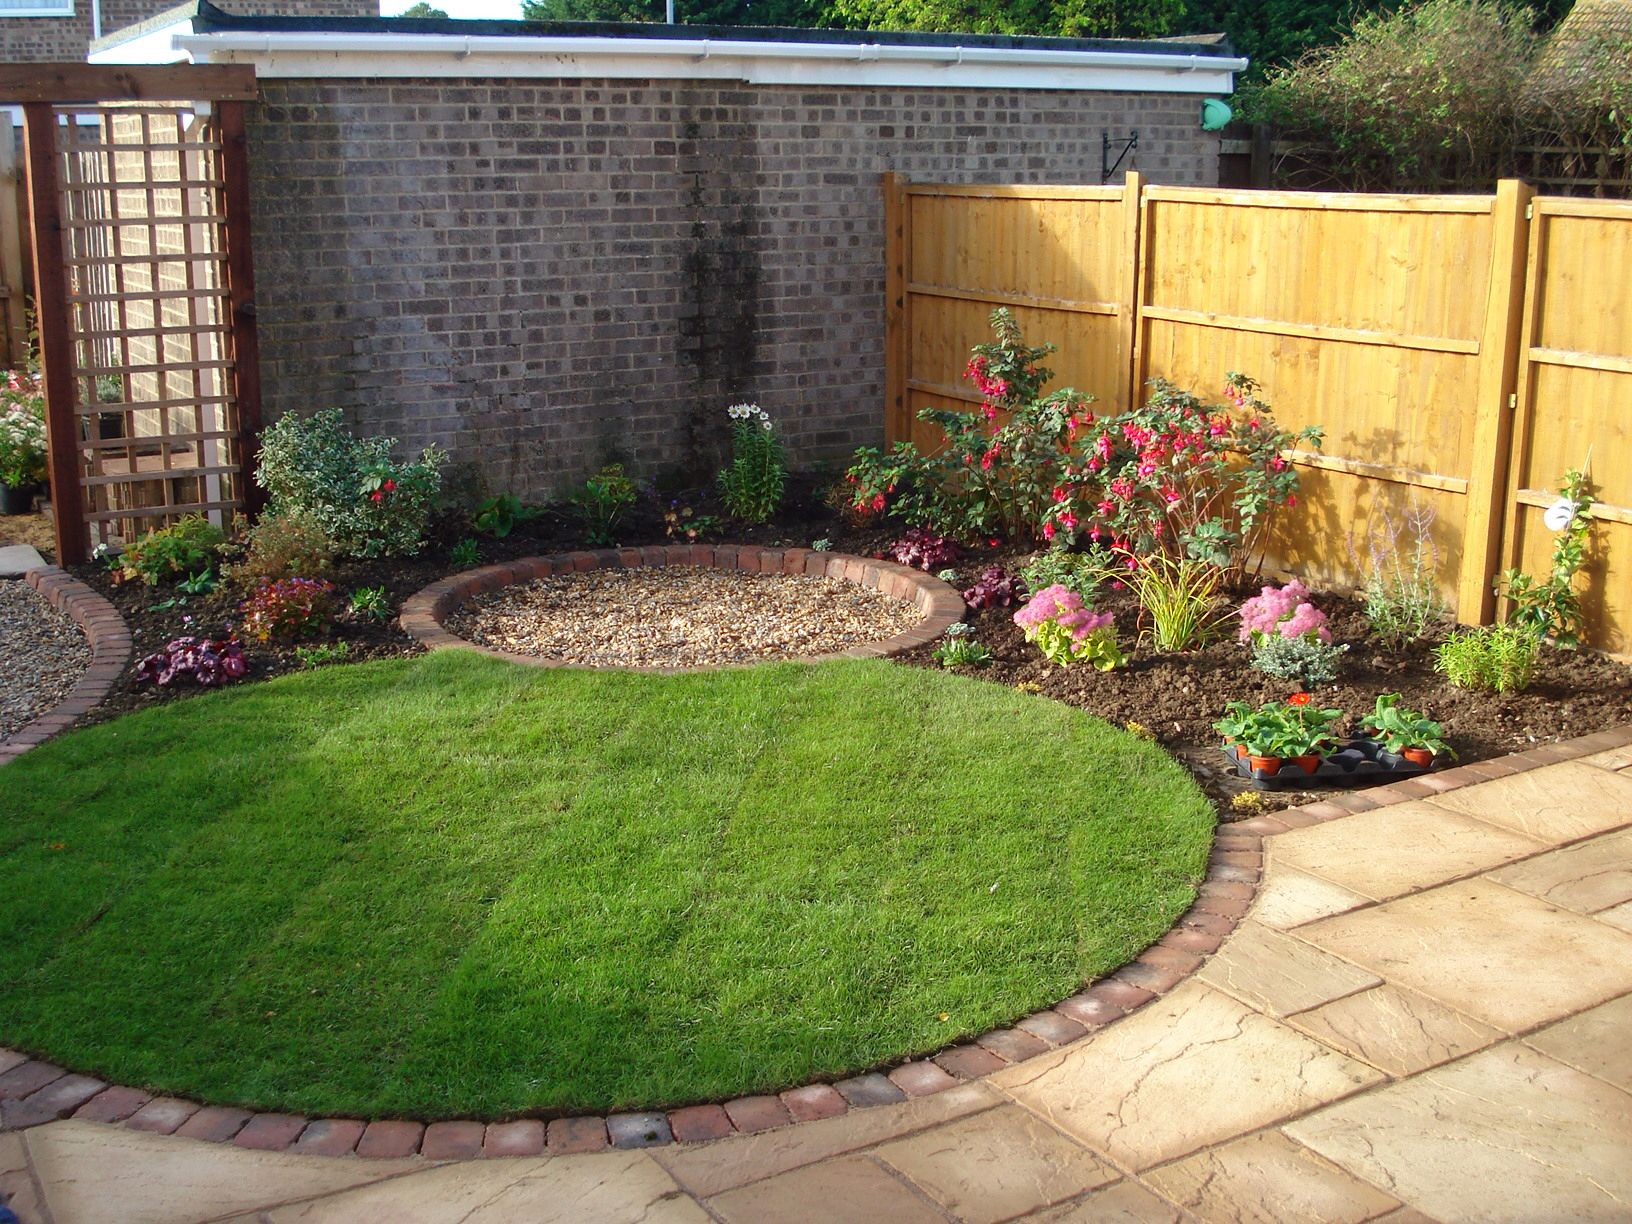 Garden Design Circular Lawns small circular lawn with tiny round patio beyond for a coherent